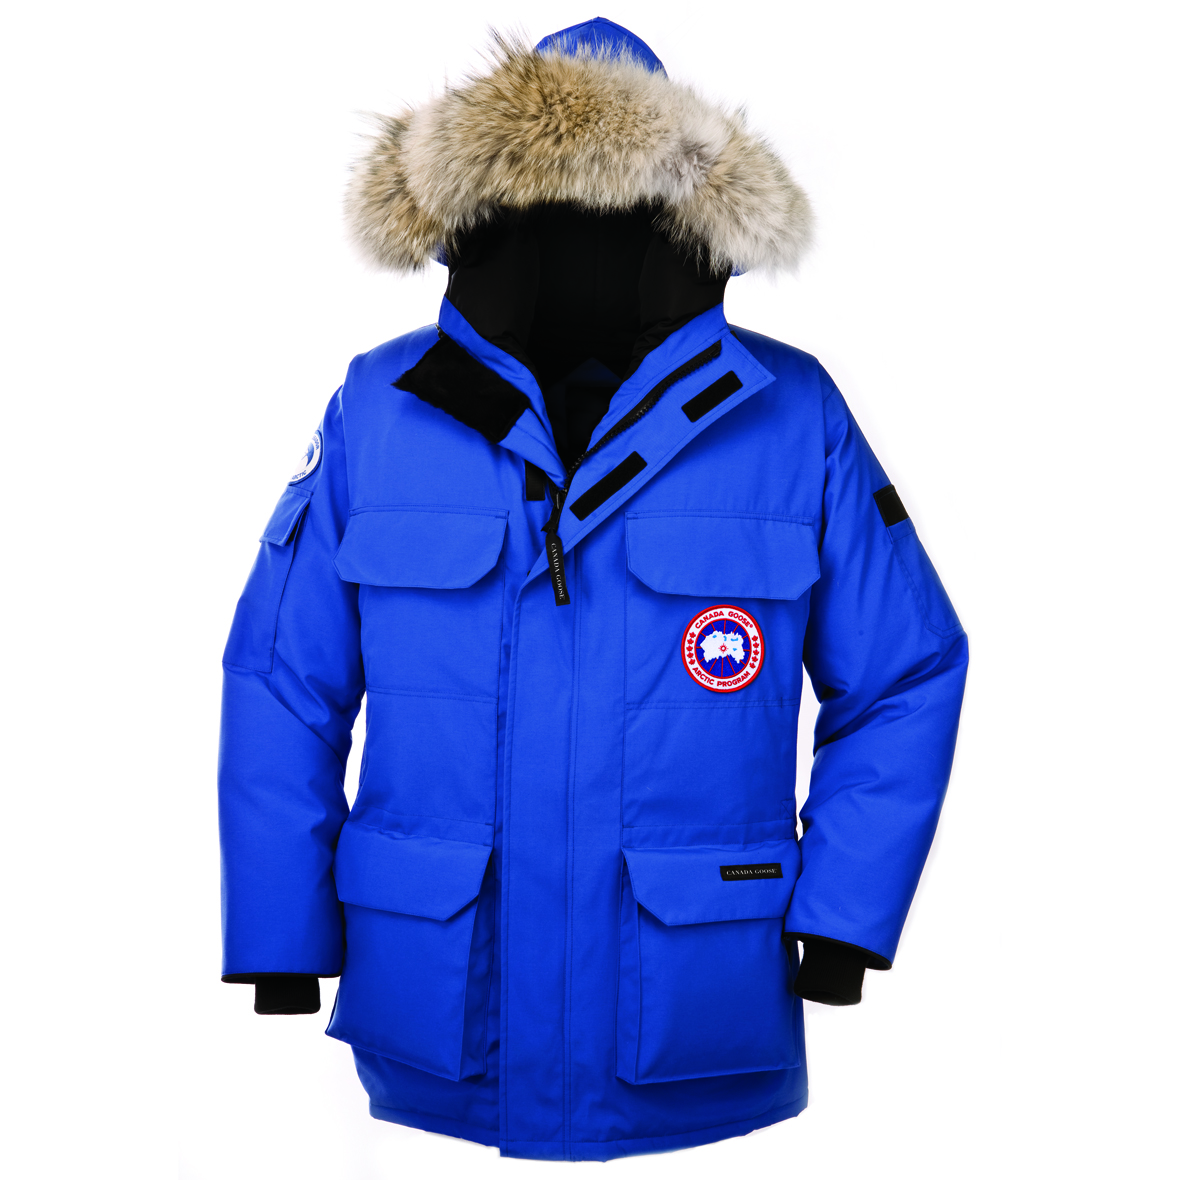 Canada Goose Polar Bears International Expedition Parka PBI BLUE For Women